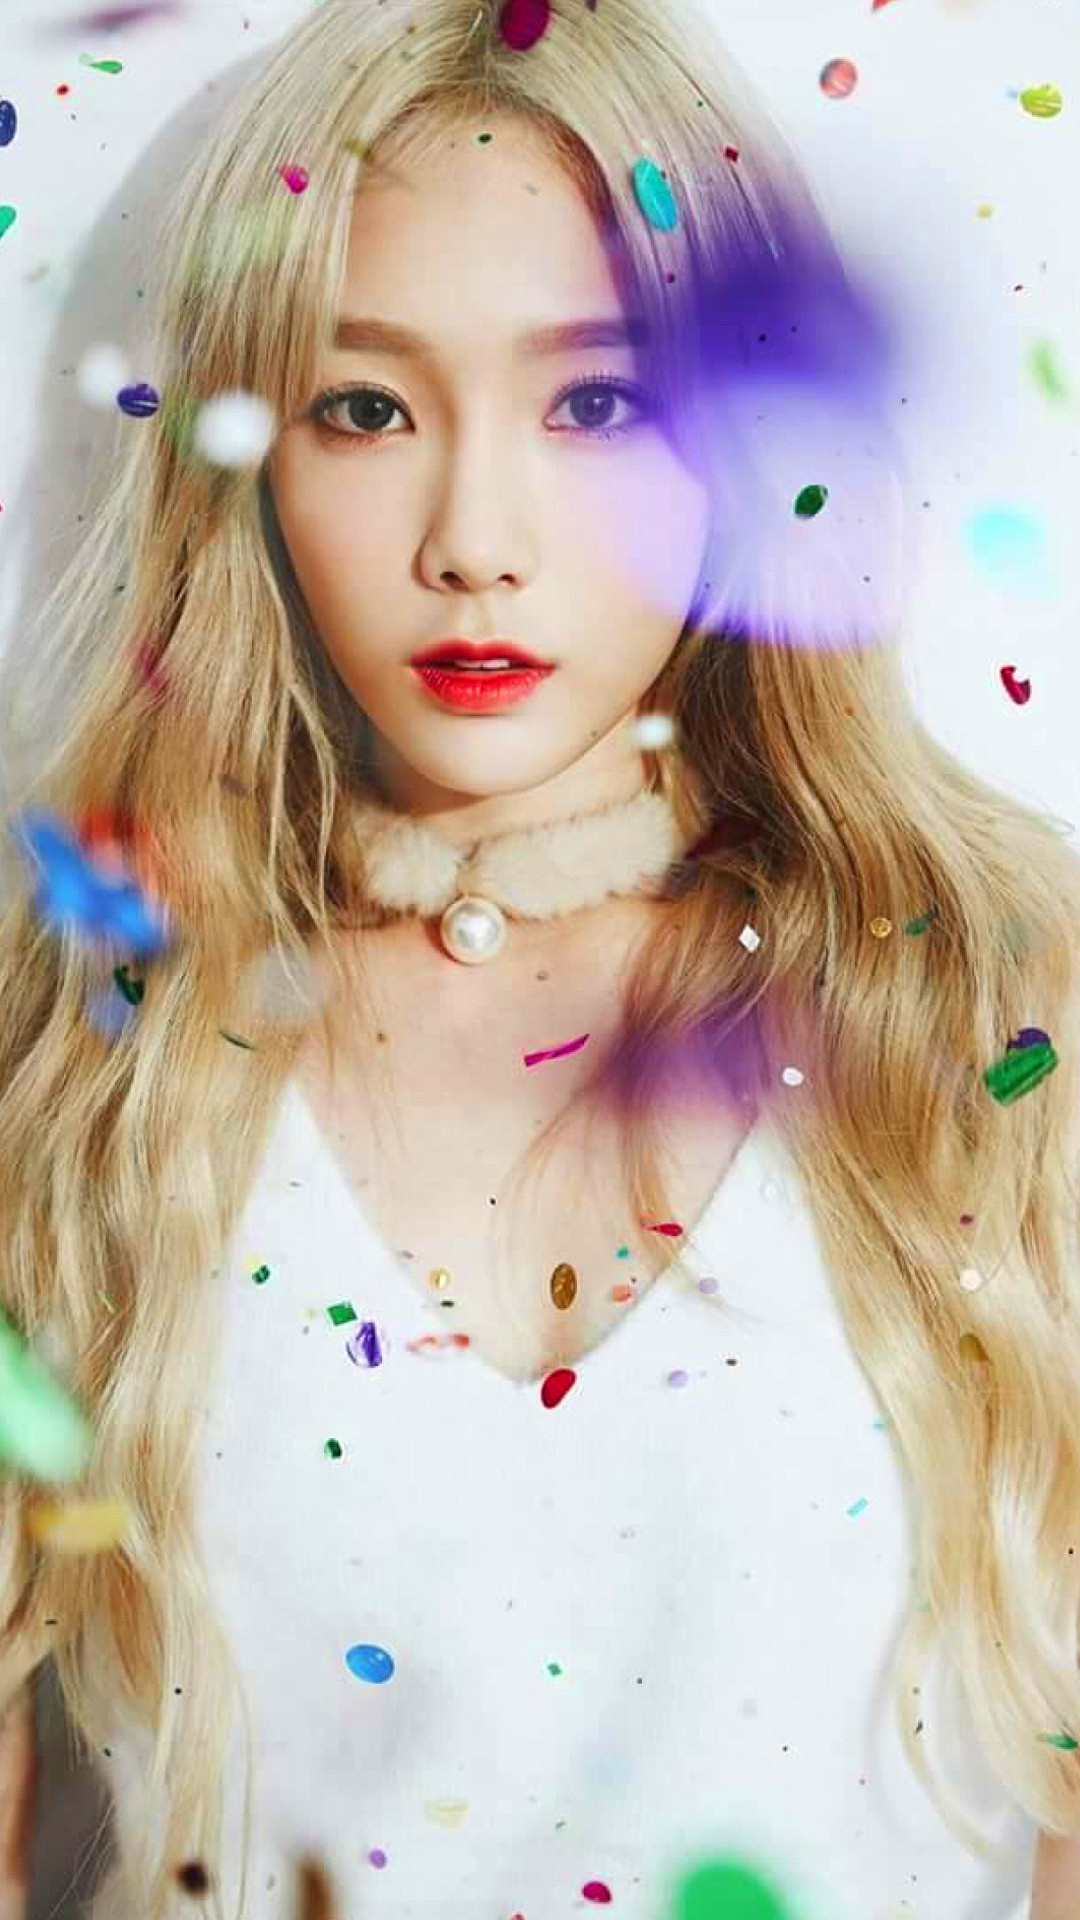 Res: 1080x1920, taeyeon kim taeyeon girls generation snsd taeyeon wallpaper taeyeon  lockscreen snsd wallpaper snsd lockscreen lockscreen lockscreens